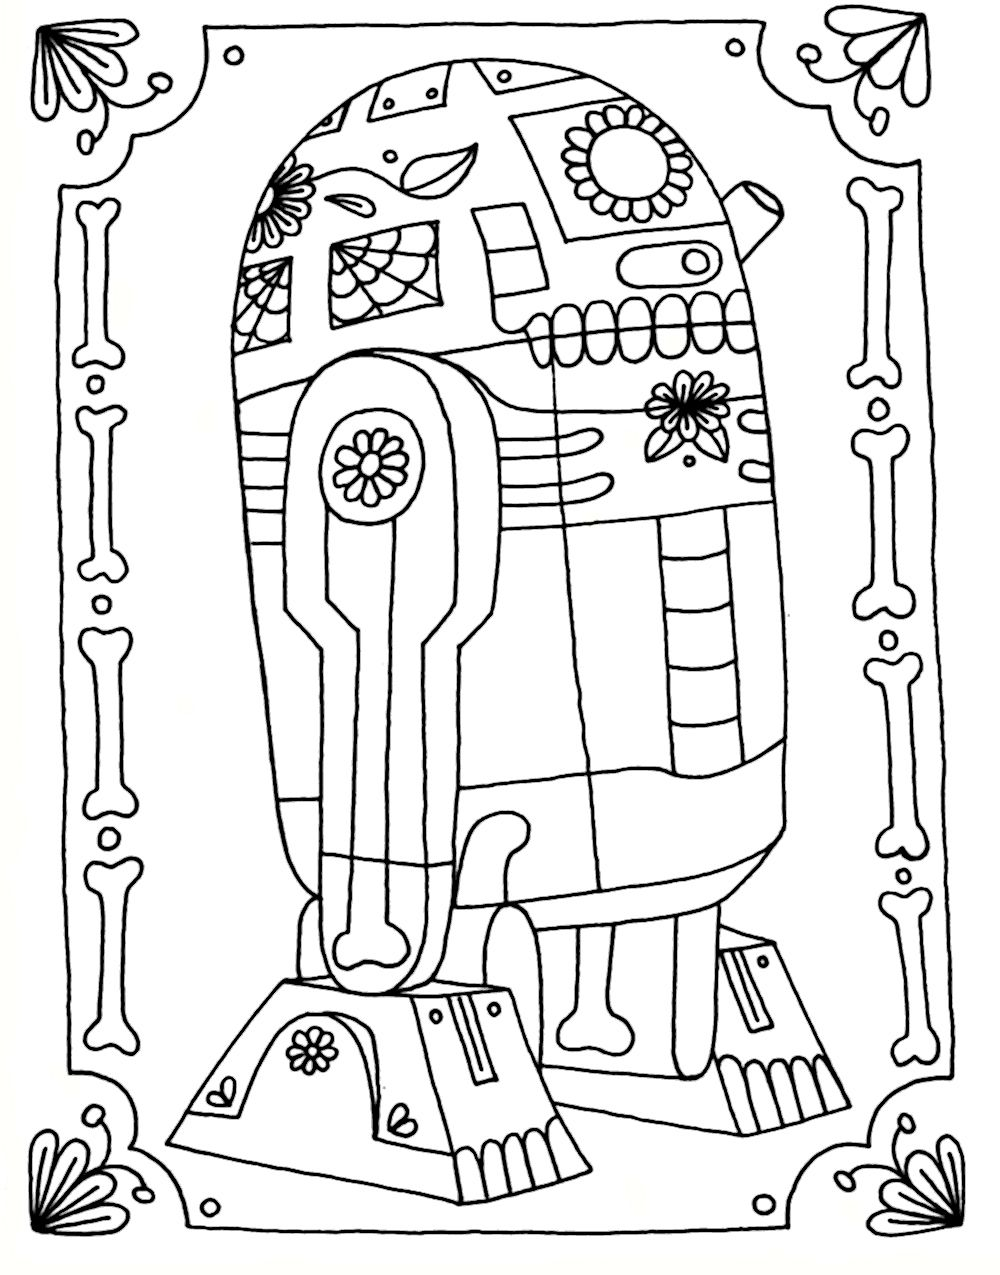 M And M Coloring Pages Yucca Flats N M Wenchkin